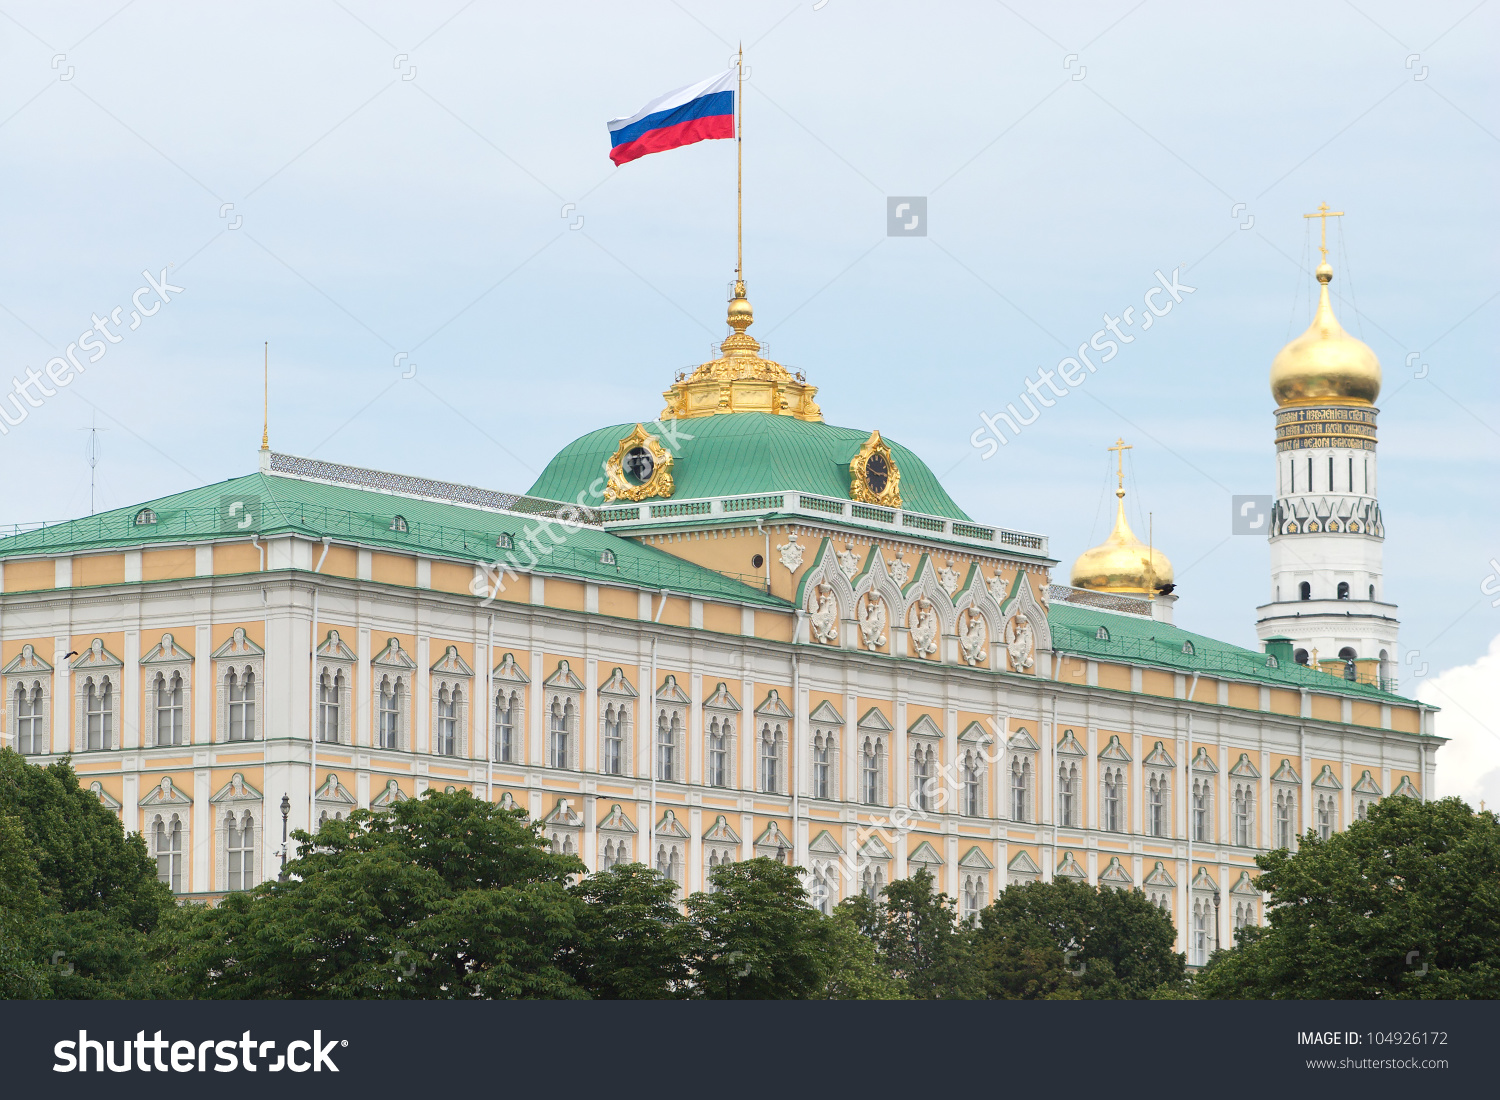 Big Kremlin Palace And Bell Tower Of Ivan The Great Stock Photo.